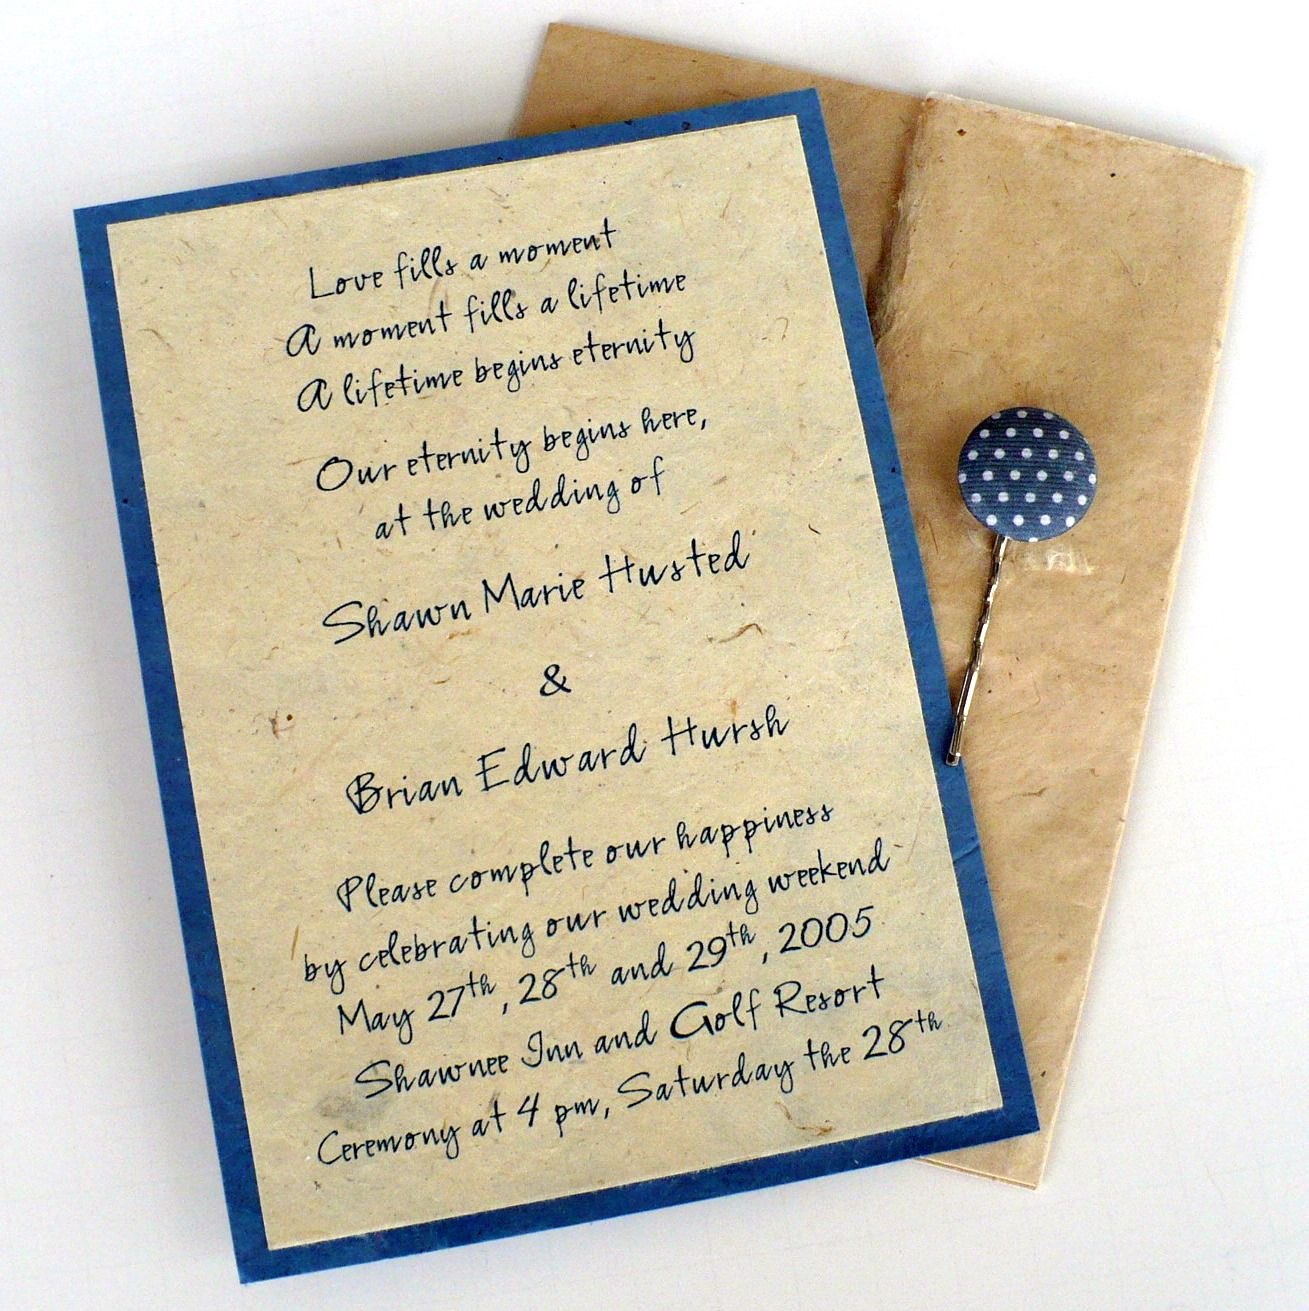 Wording for wedding invitations hindu personal wedding for Hindu wedding invitations messages